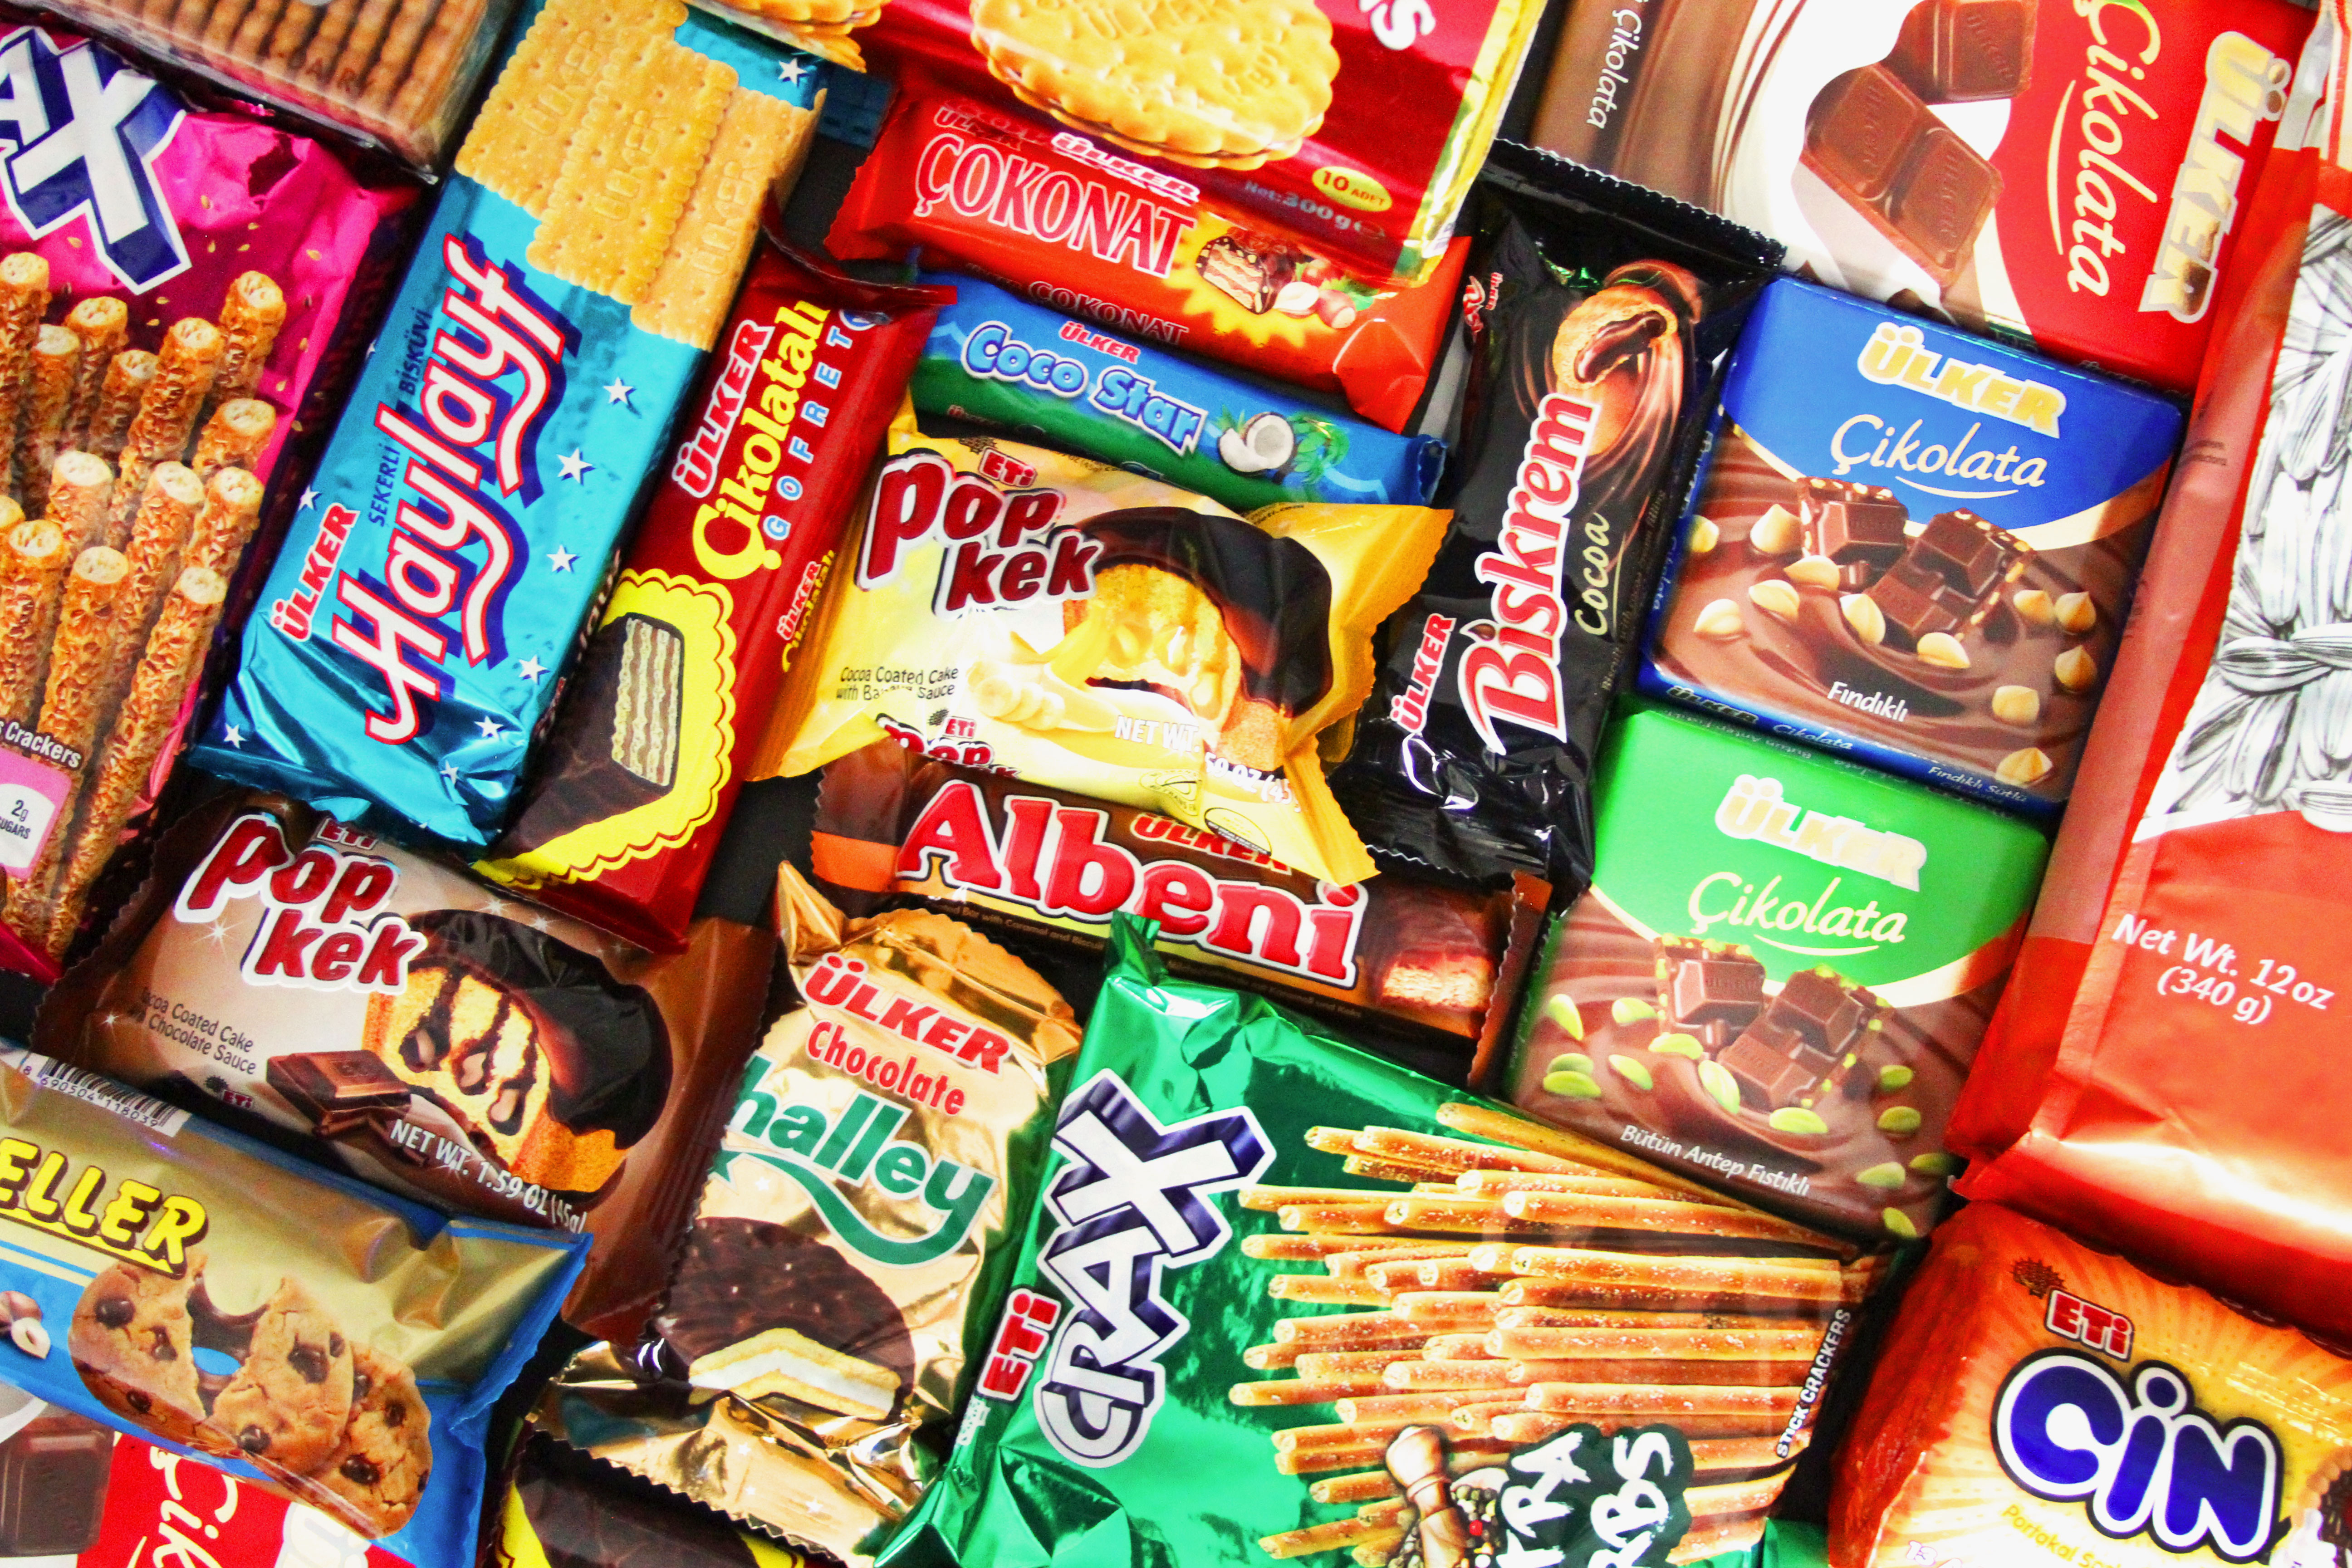 An array of Turkish snacks in bright-colored packaging.